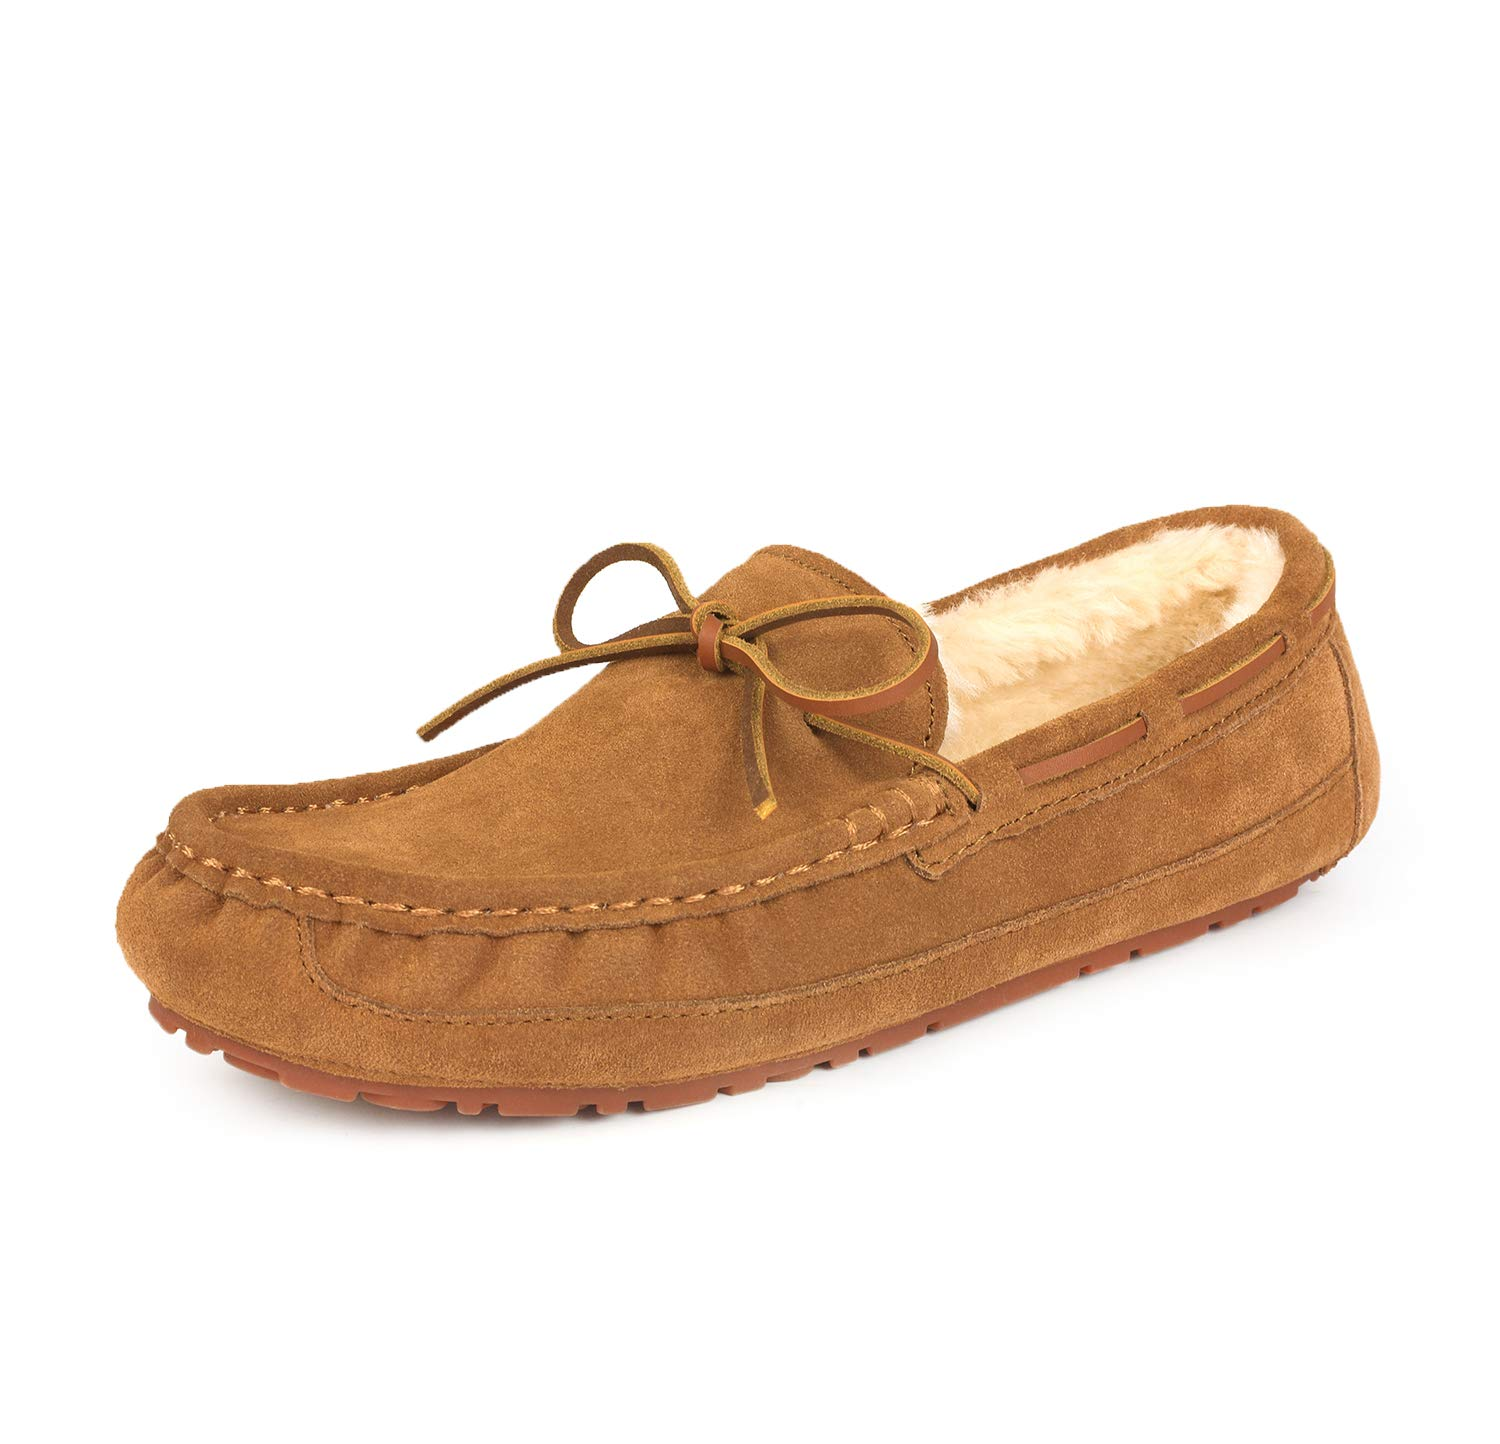 DREAM PAIRS Men's Au-Loafer-02 Tan Faux Fur Slippers Loafers Shoes Size 10.5 M US